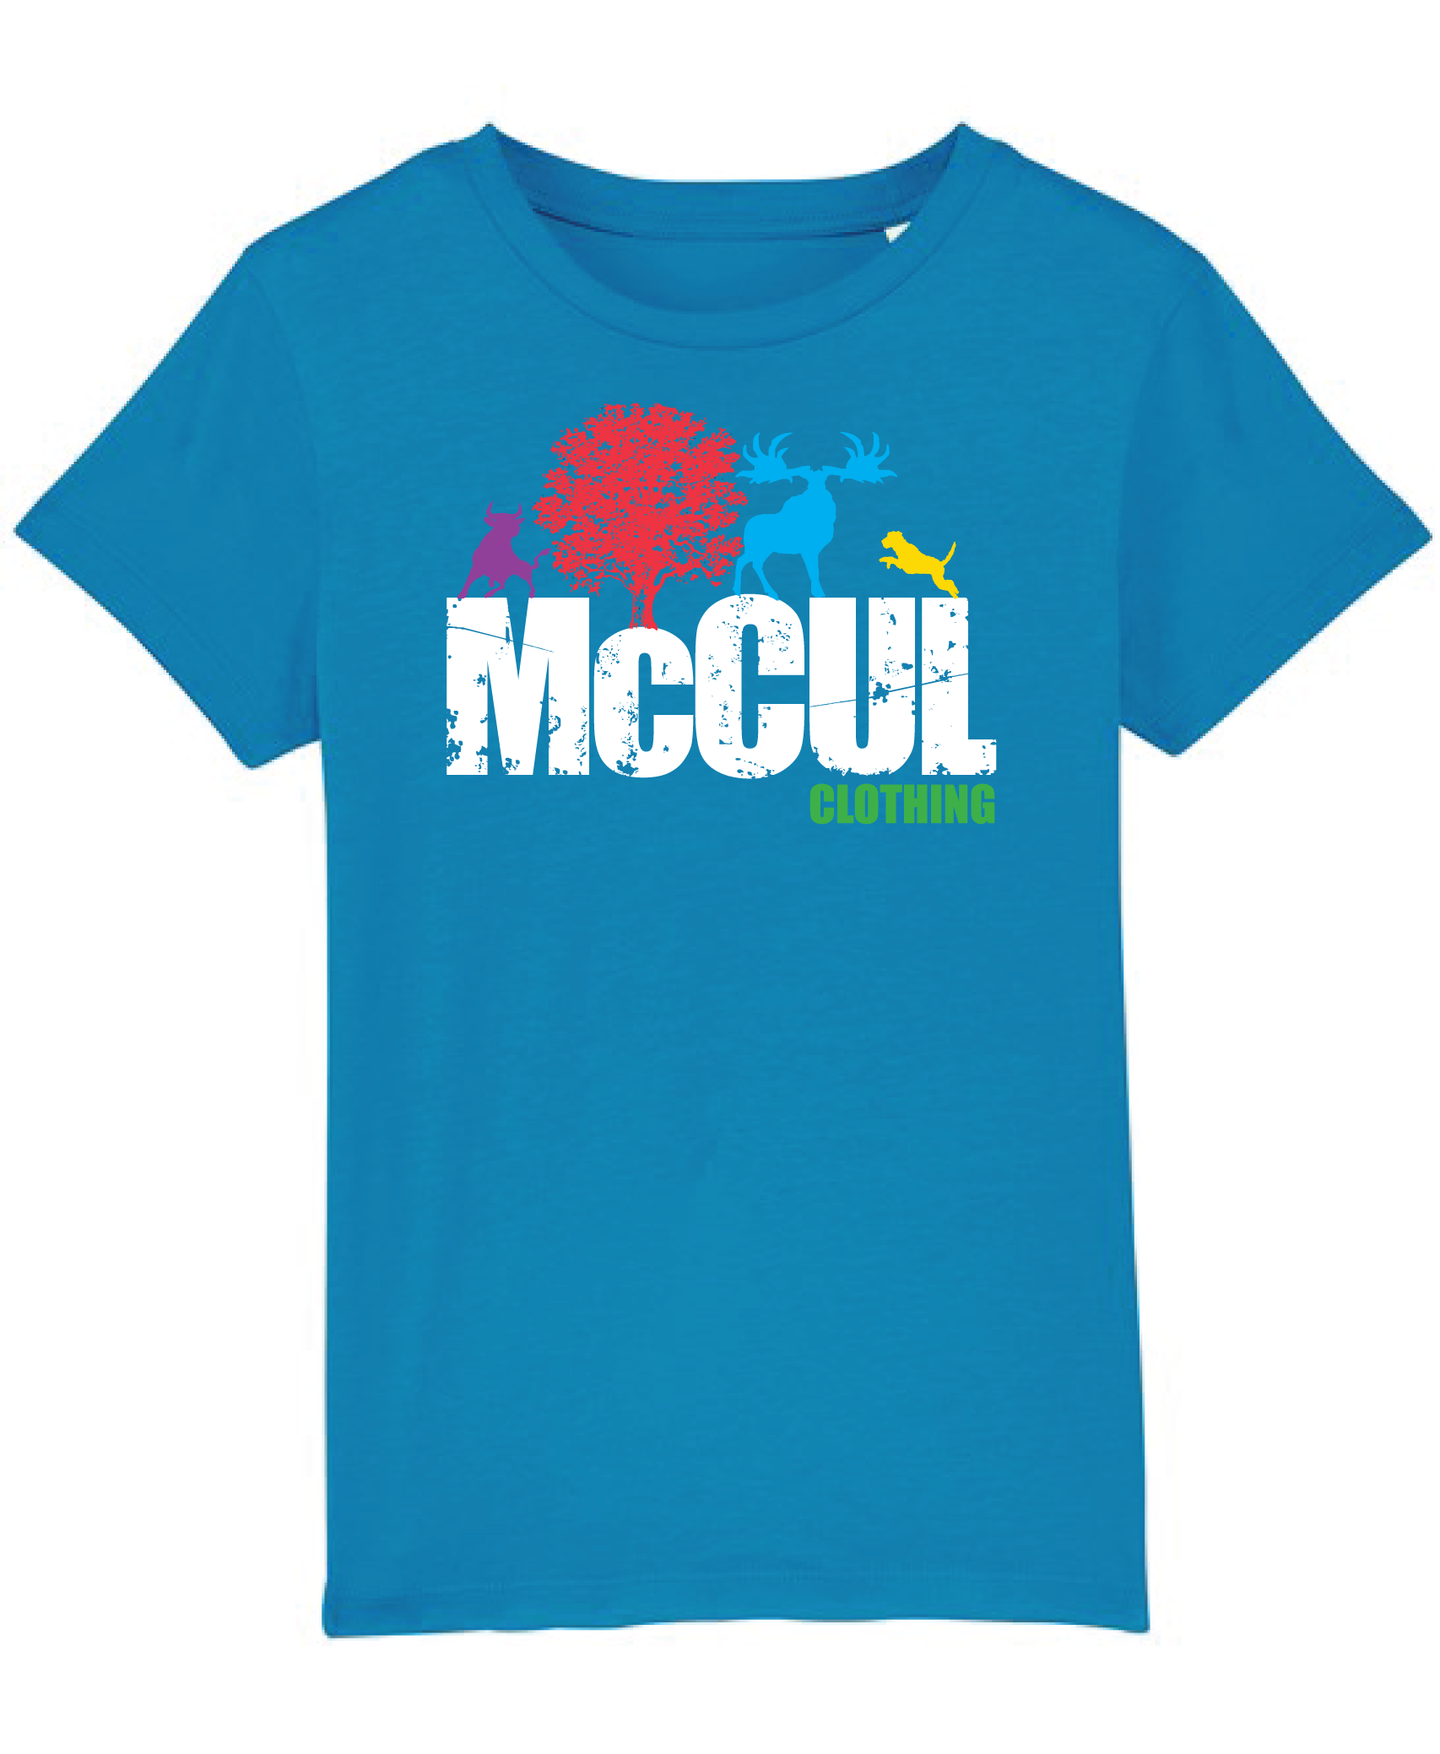 Boys New Azure Organic tee shirt with McCul logo.